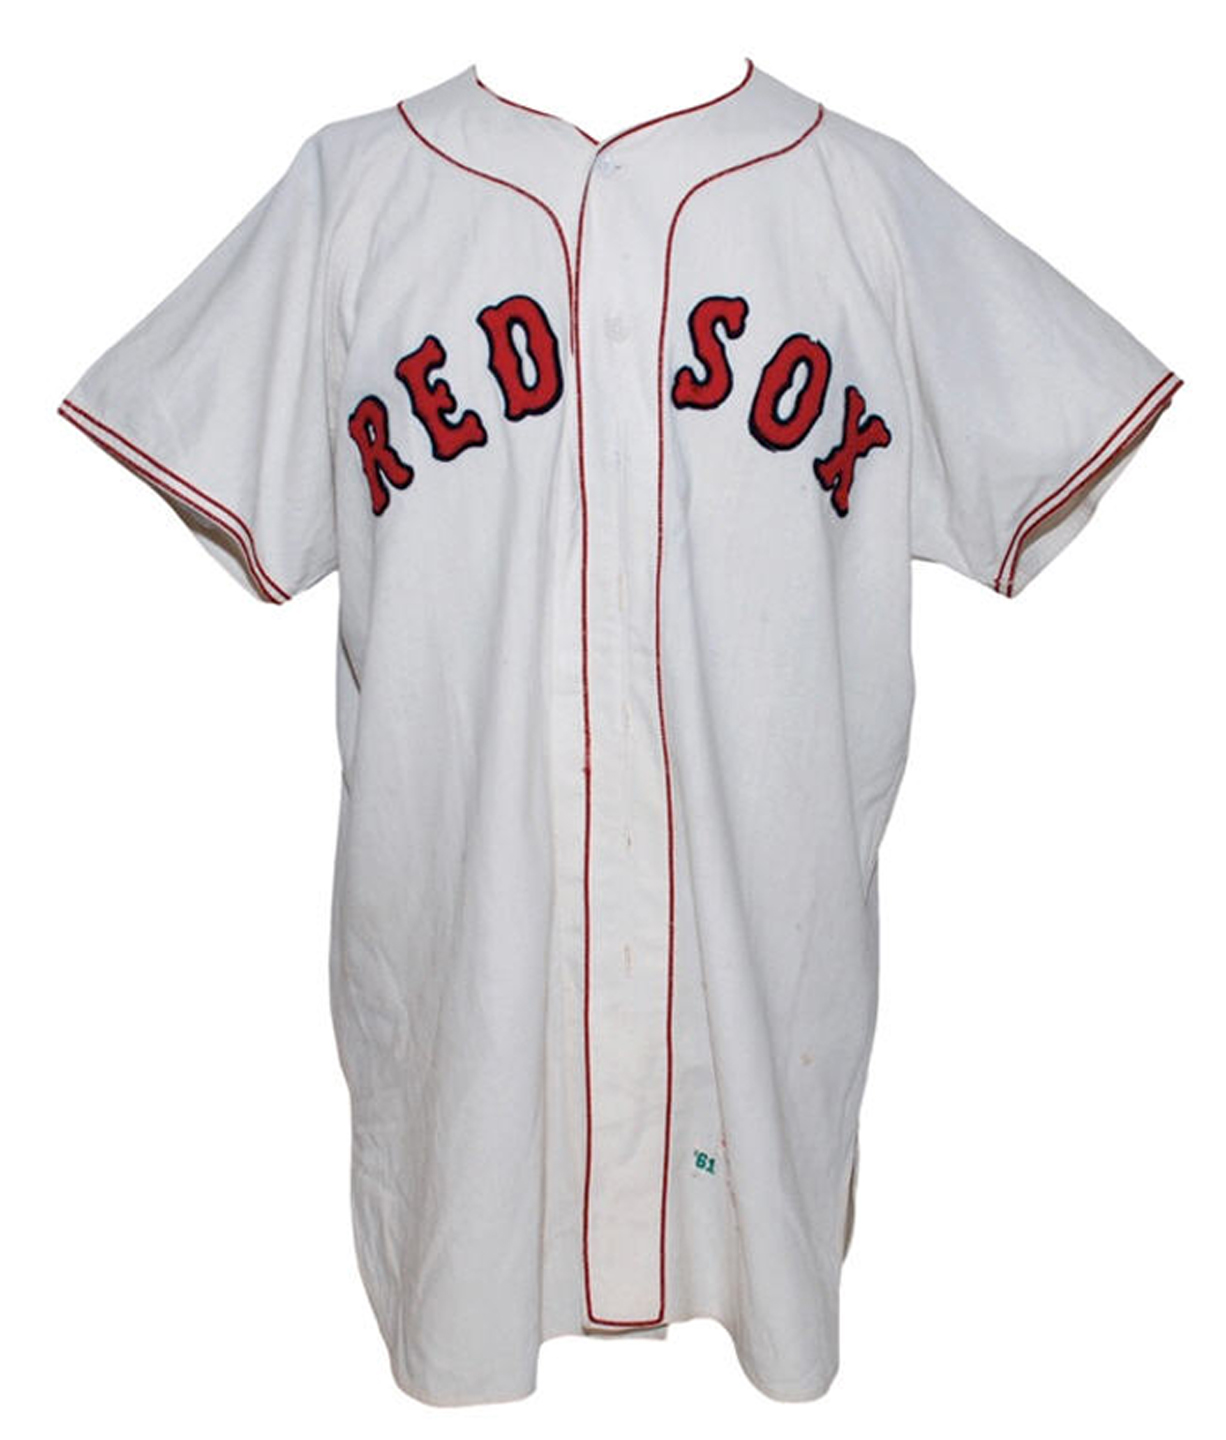 5405fd89043 ... buy rudy york boston red sox game worn home jersey 1961 0c2a1 51e65